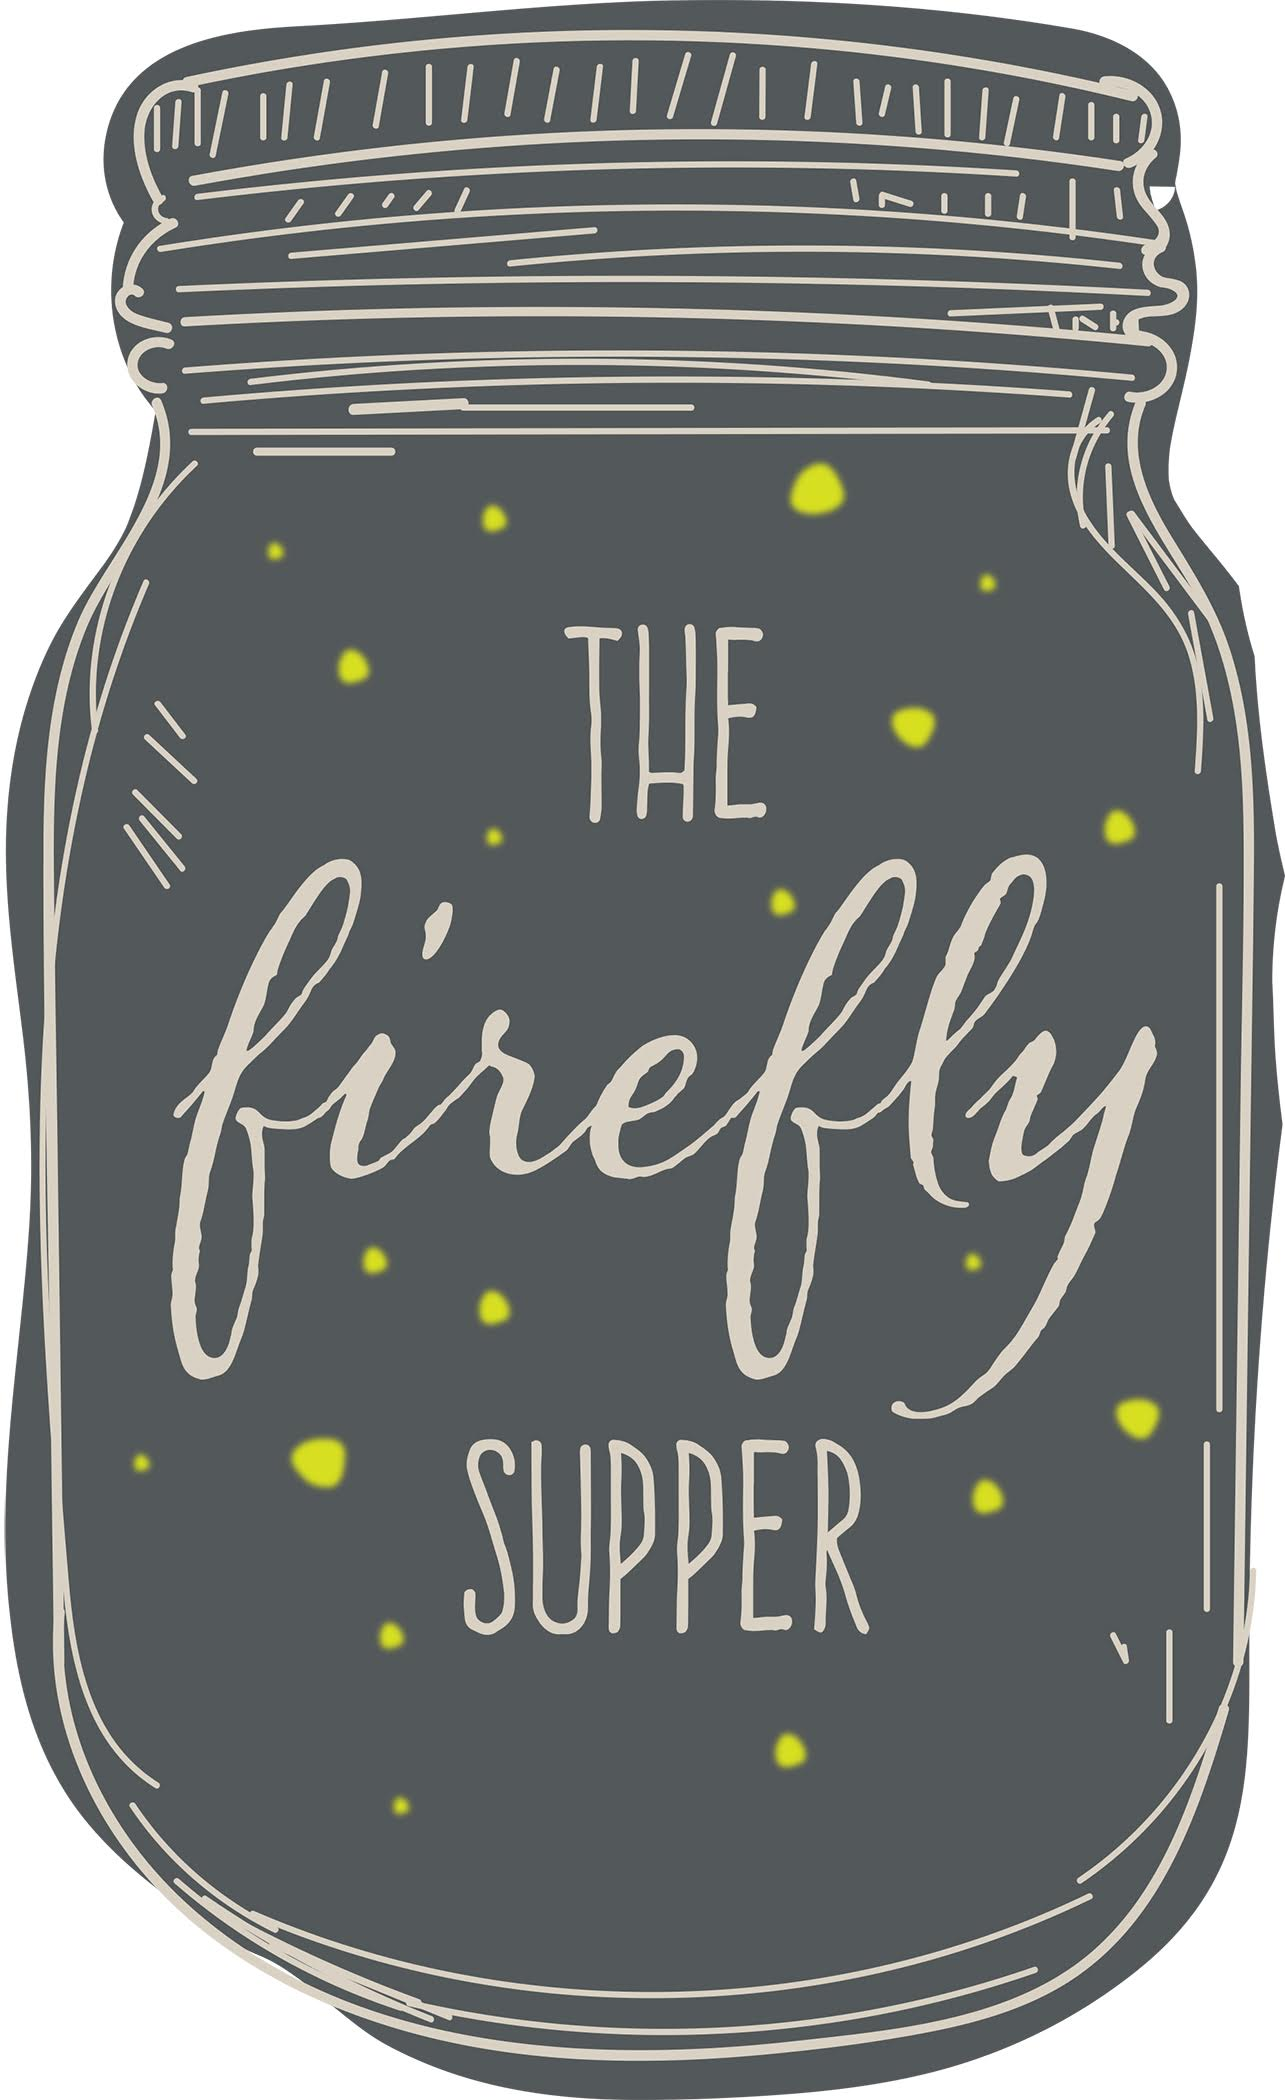 Doors of Hope to host Firefly Supper